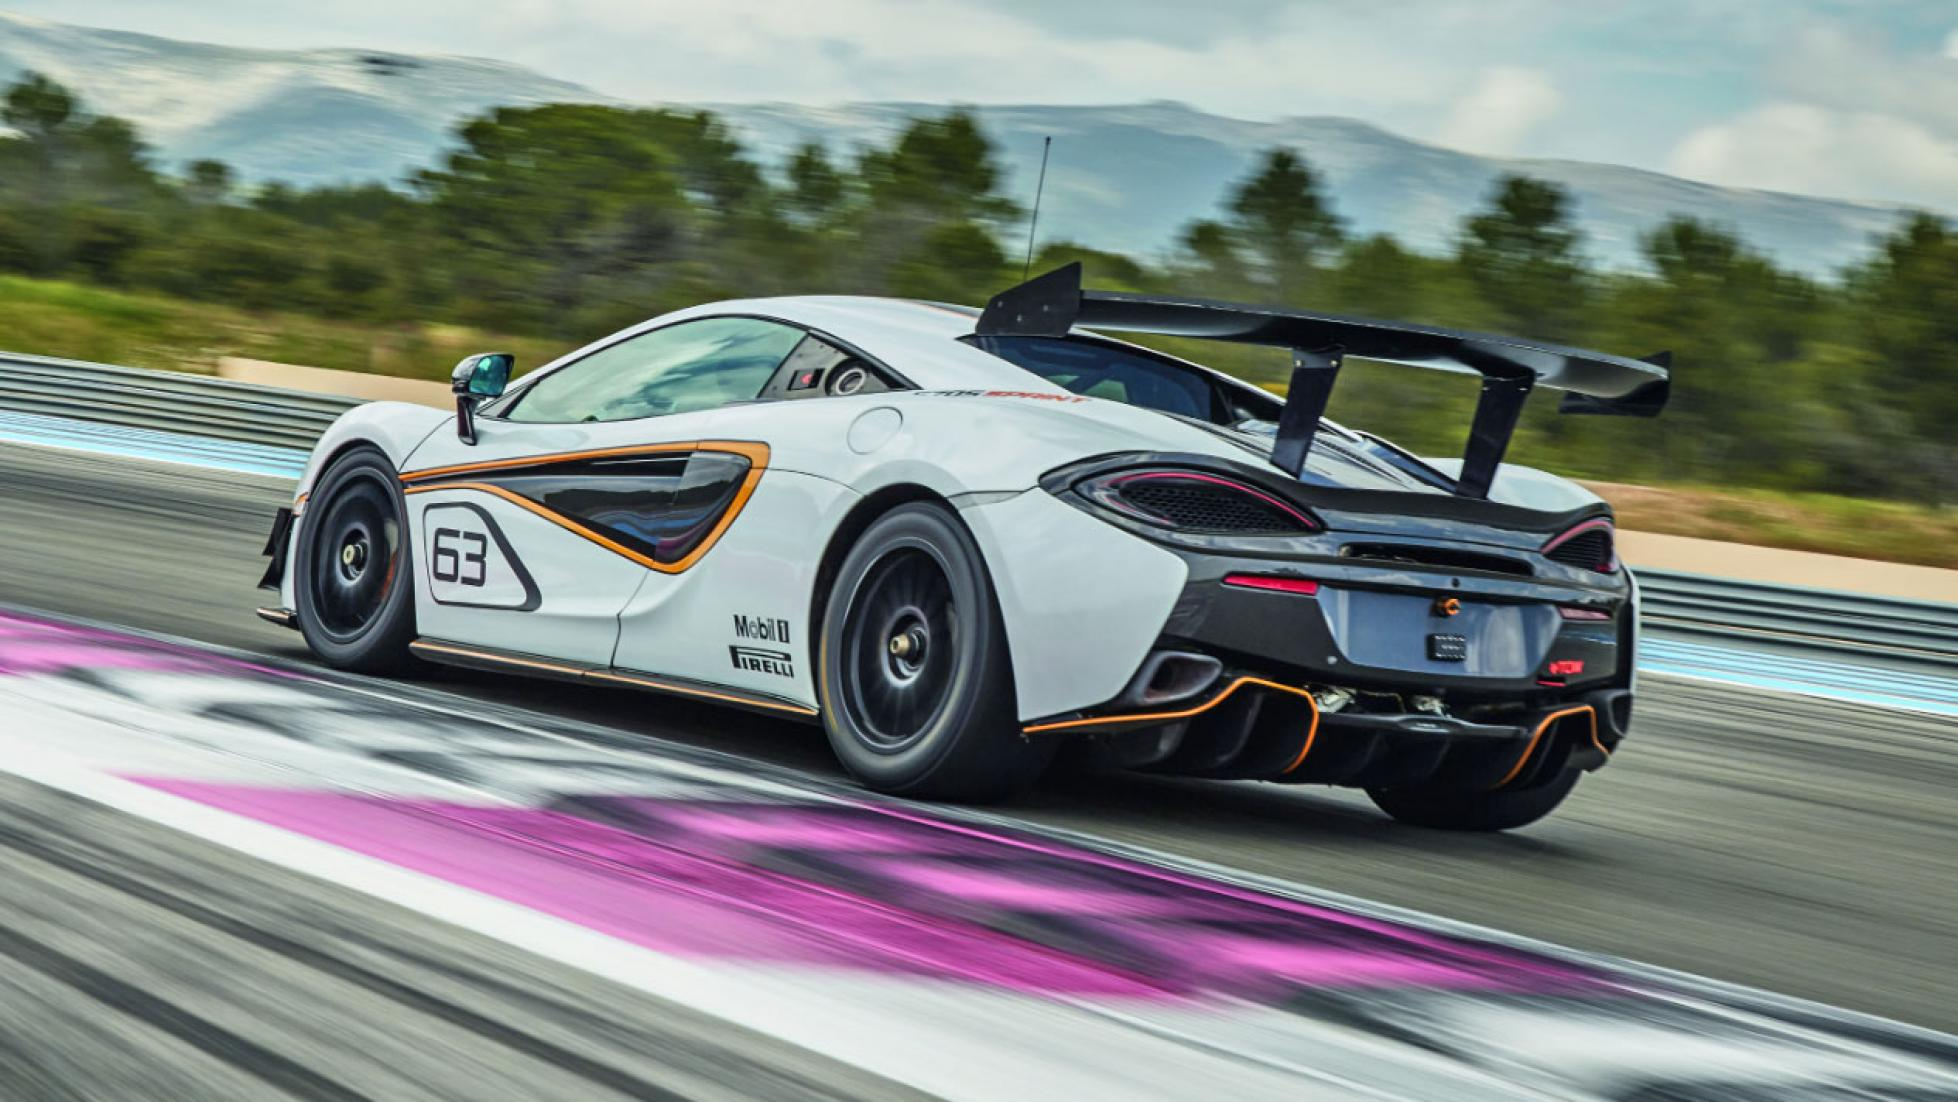 1958x1102 - McLaren 570S GT4 Wallpapers 16